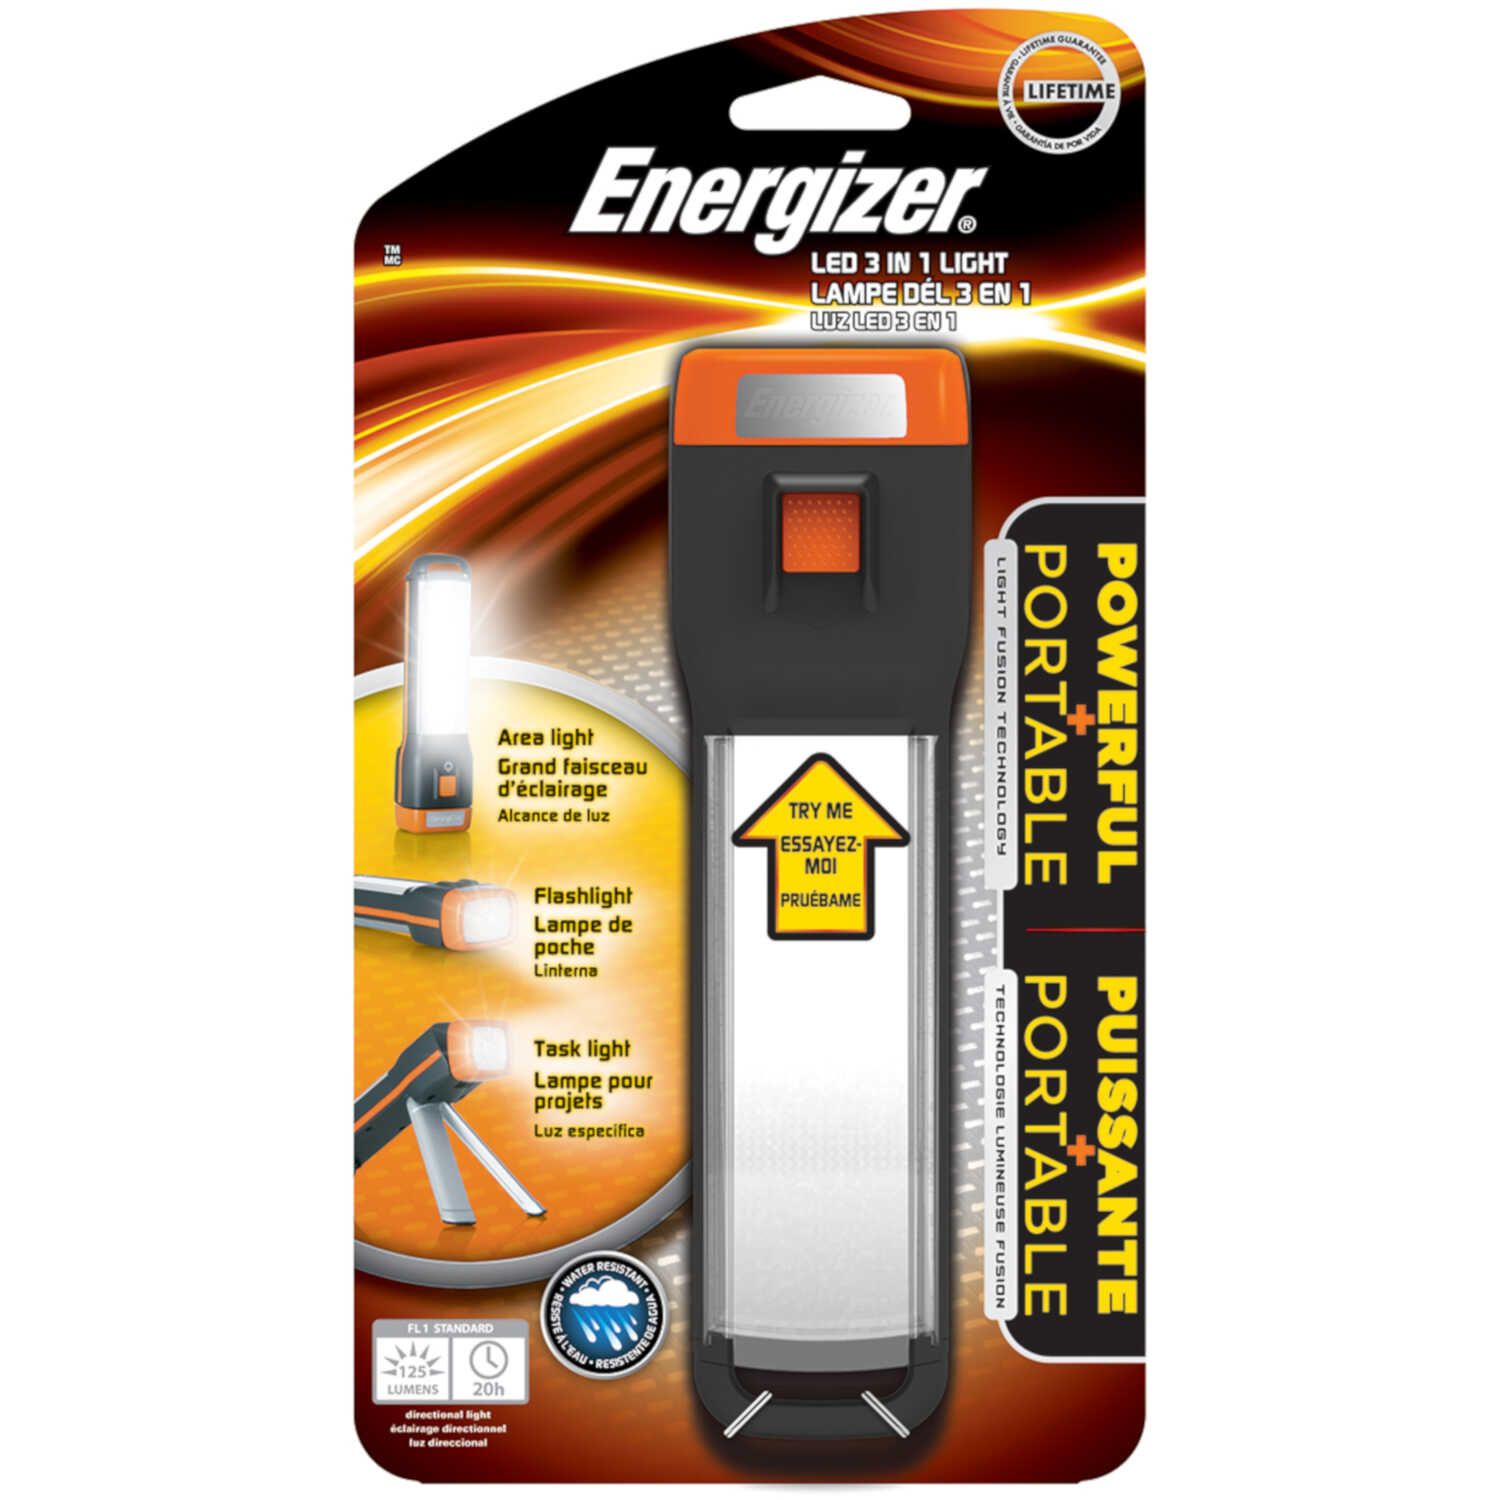 Energizer  3-in-1  150 lumens Black/Gray  LED  Flashlight  AA Battery